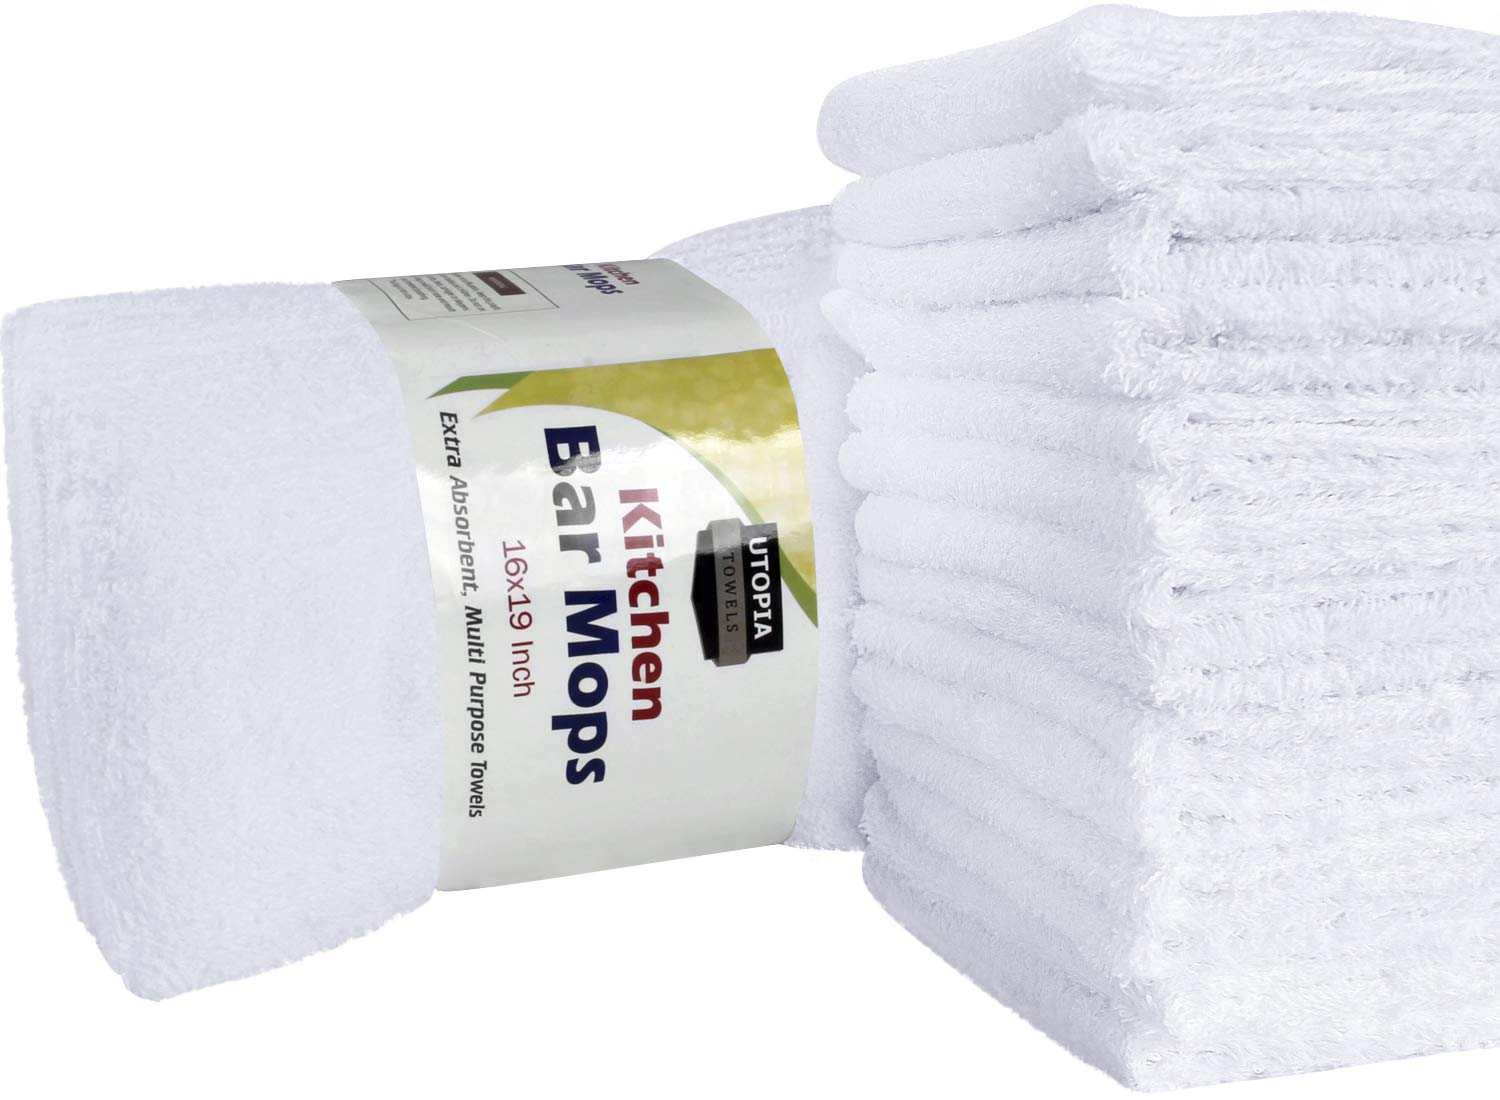 Utopia Towels 12 Pack Kitchen Bar Mop Towels 16 x 19 inches, White Bar Towels and Cleaning Towels